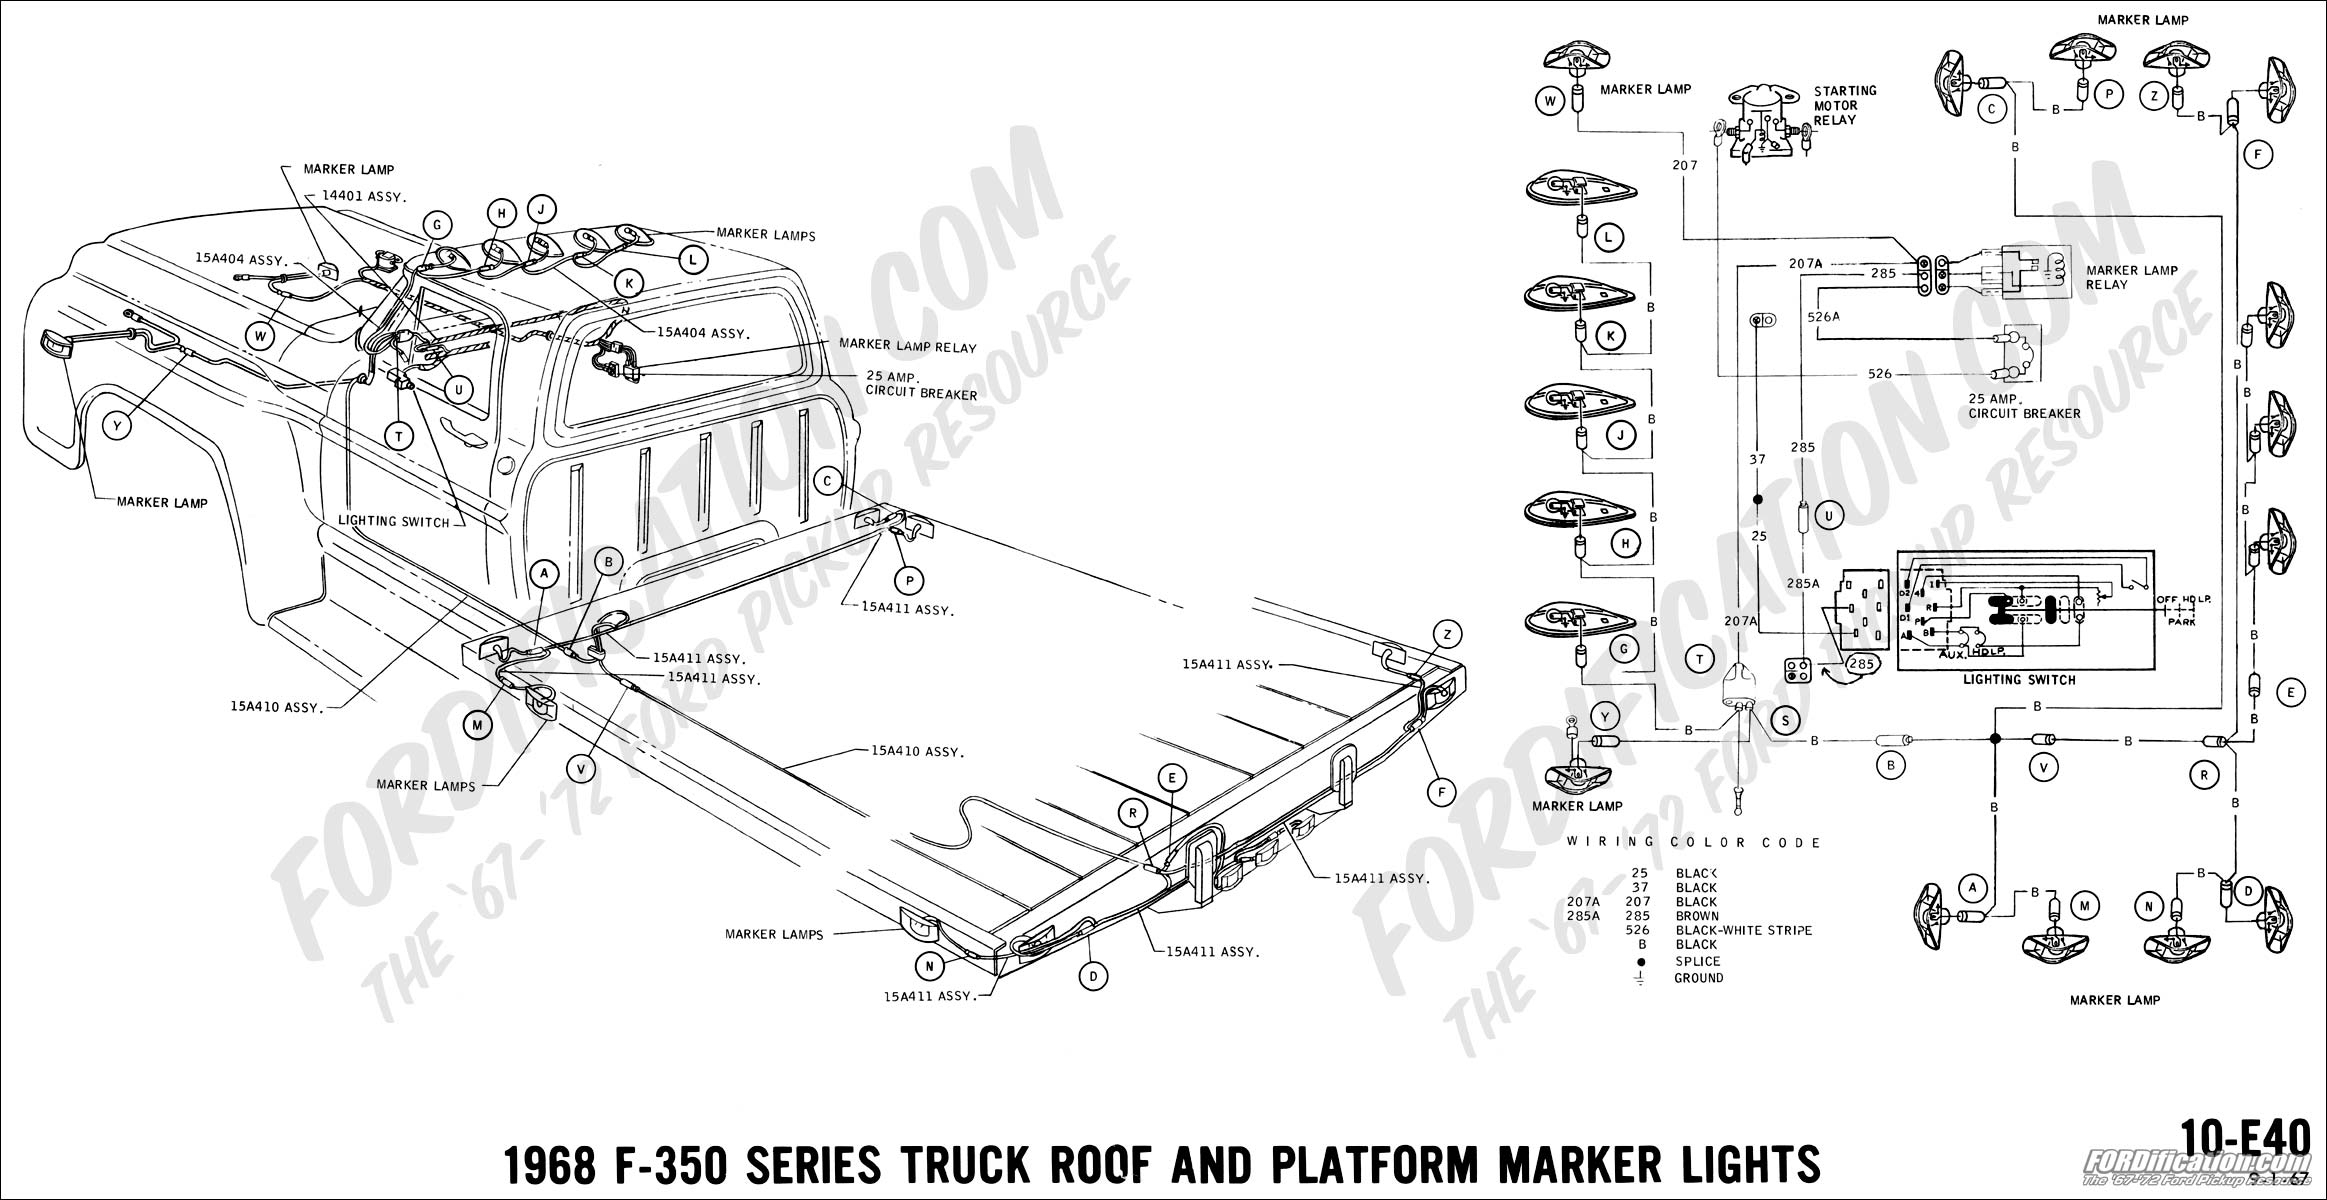 Flatbed Pickup Wiring Diagram | Wiring Diagram - Utility Trailer Wiring Diagram With Brakes